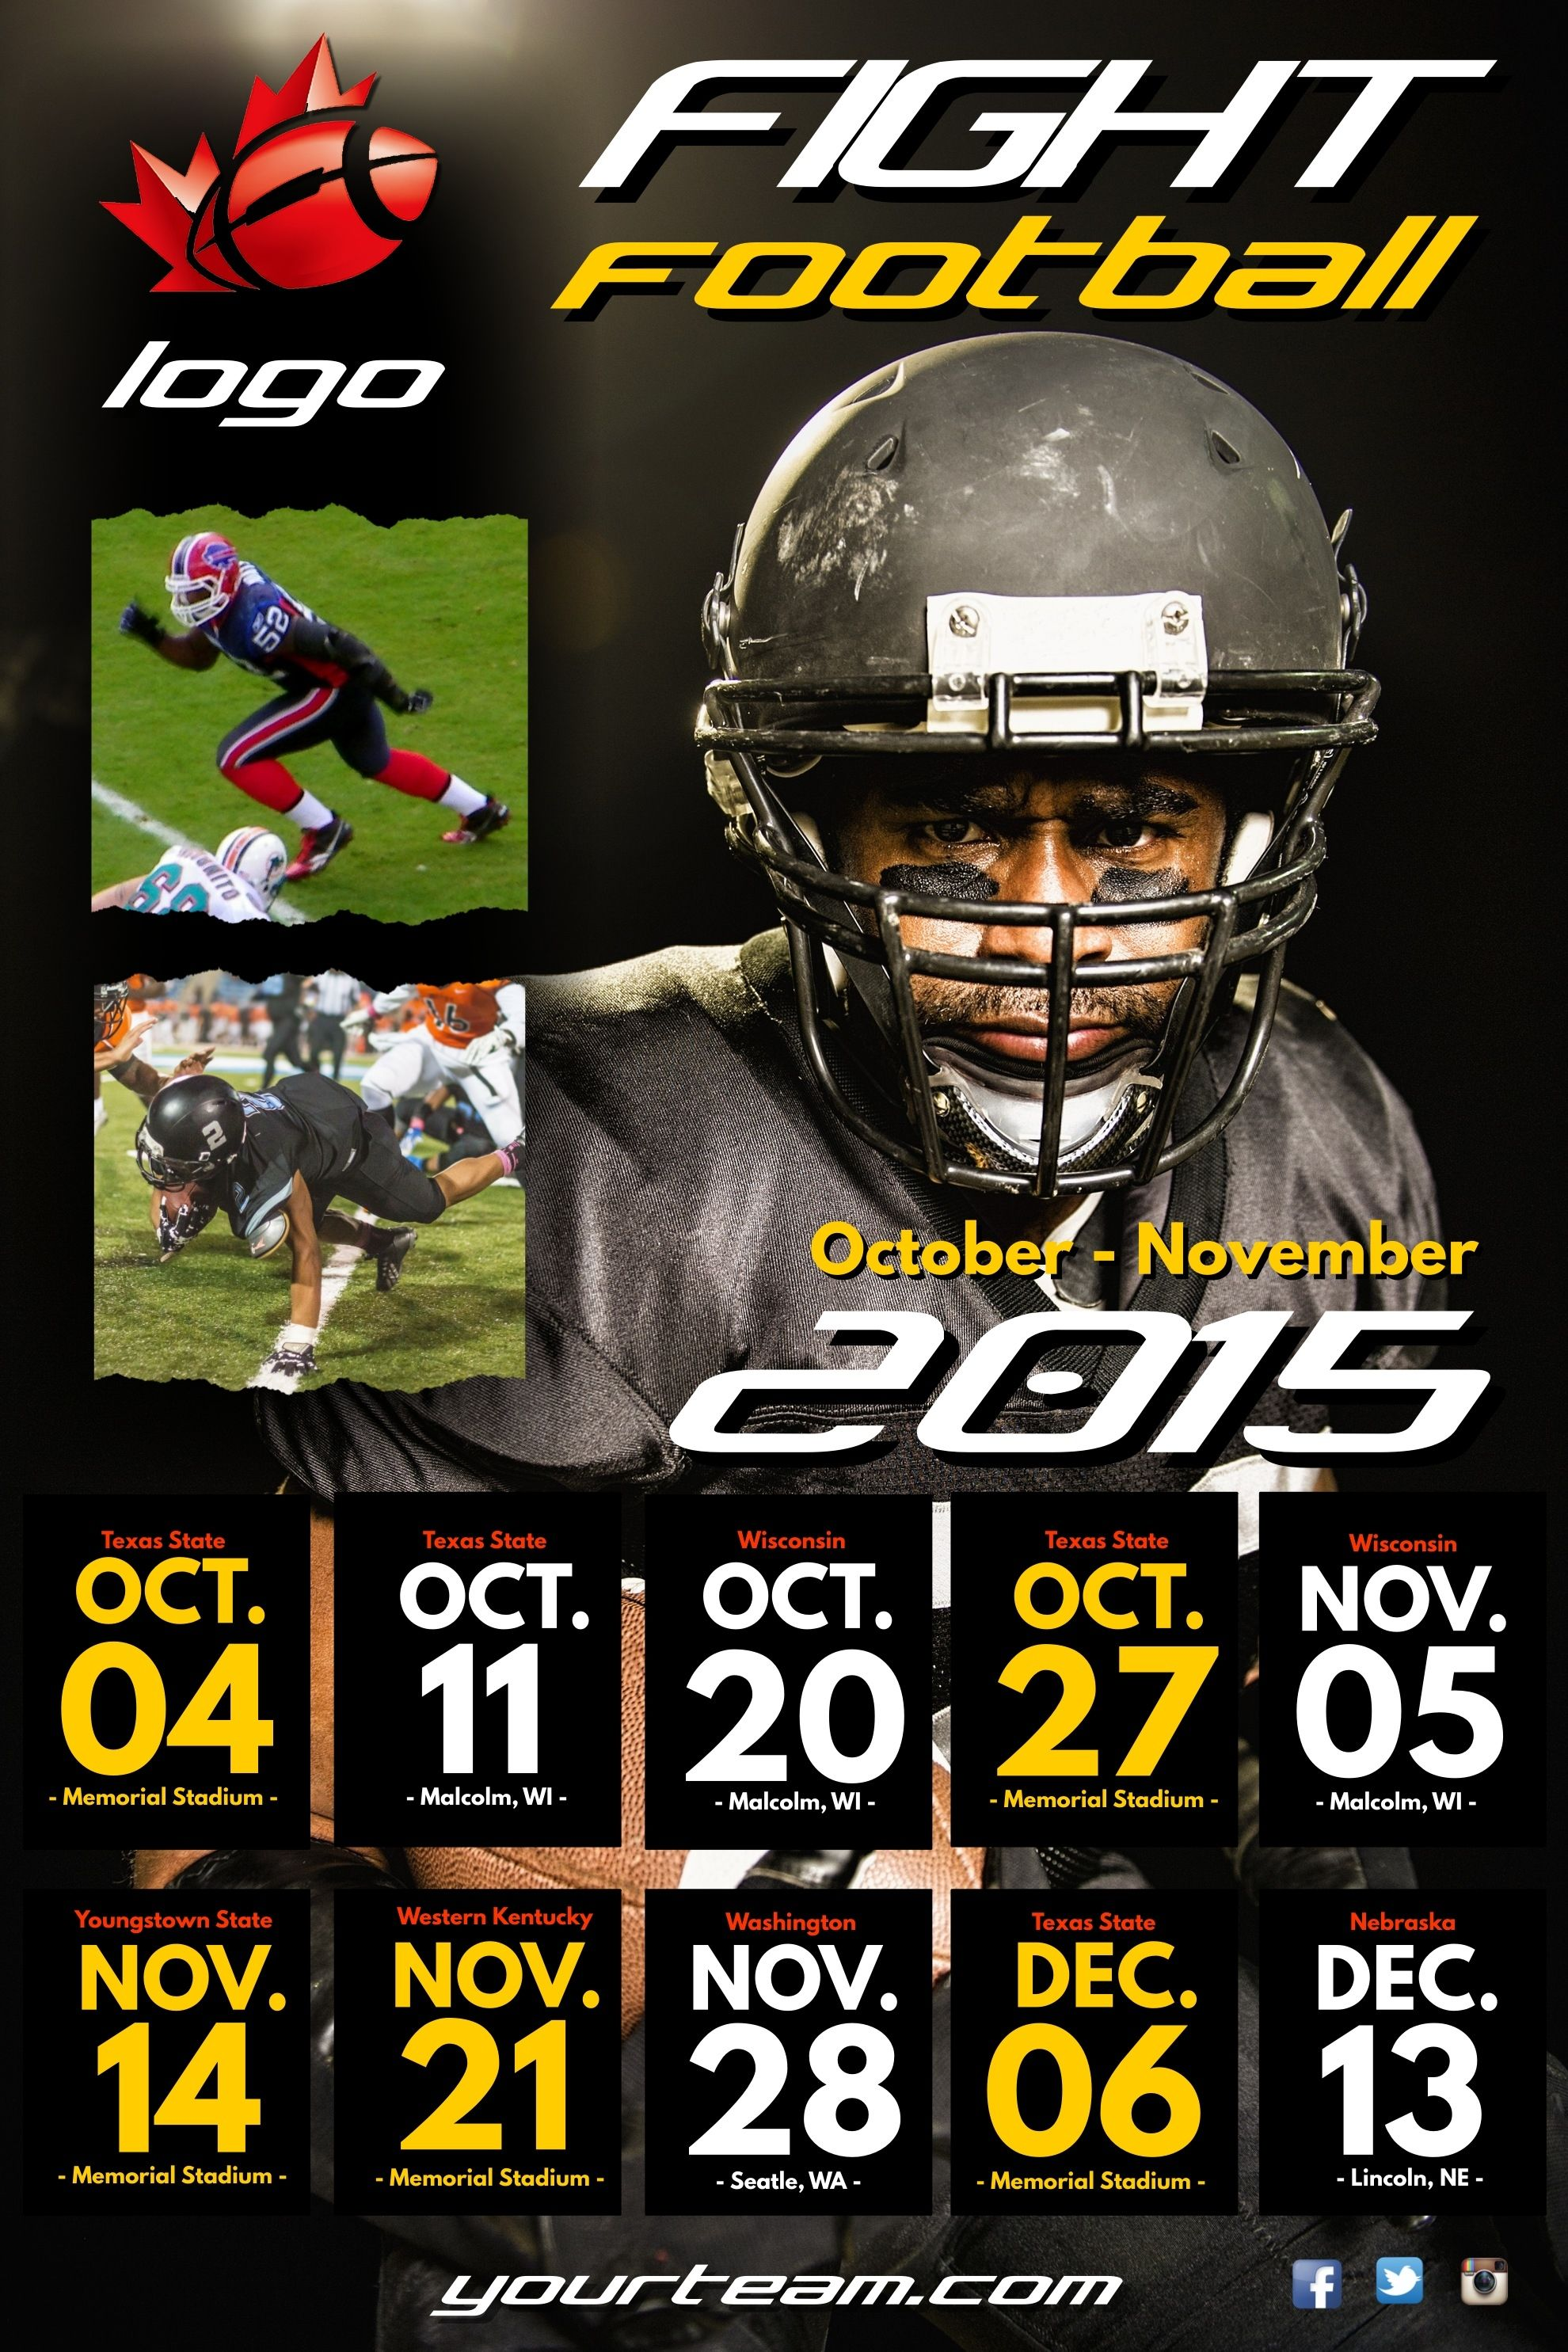 Football Schedule Poster - Click on the image to customize on PosterMyWall.